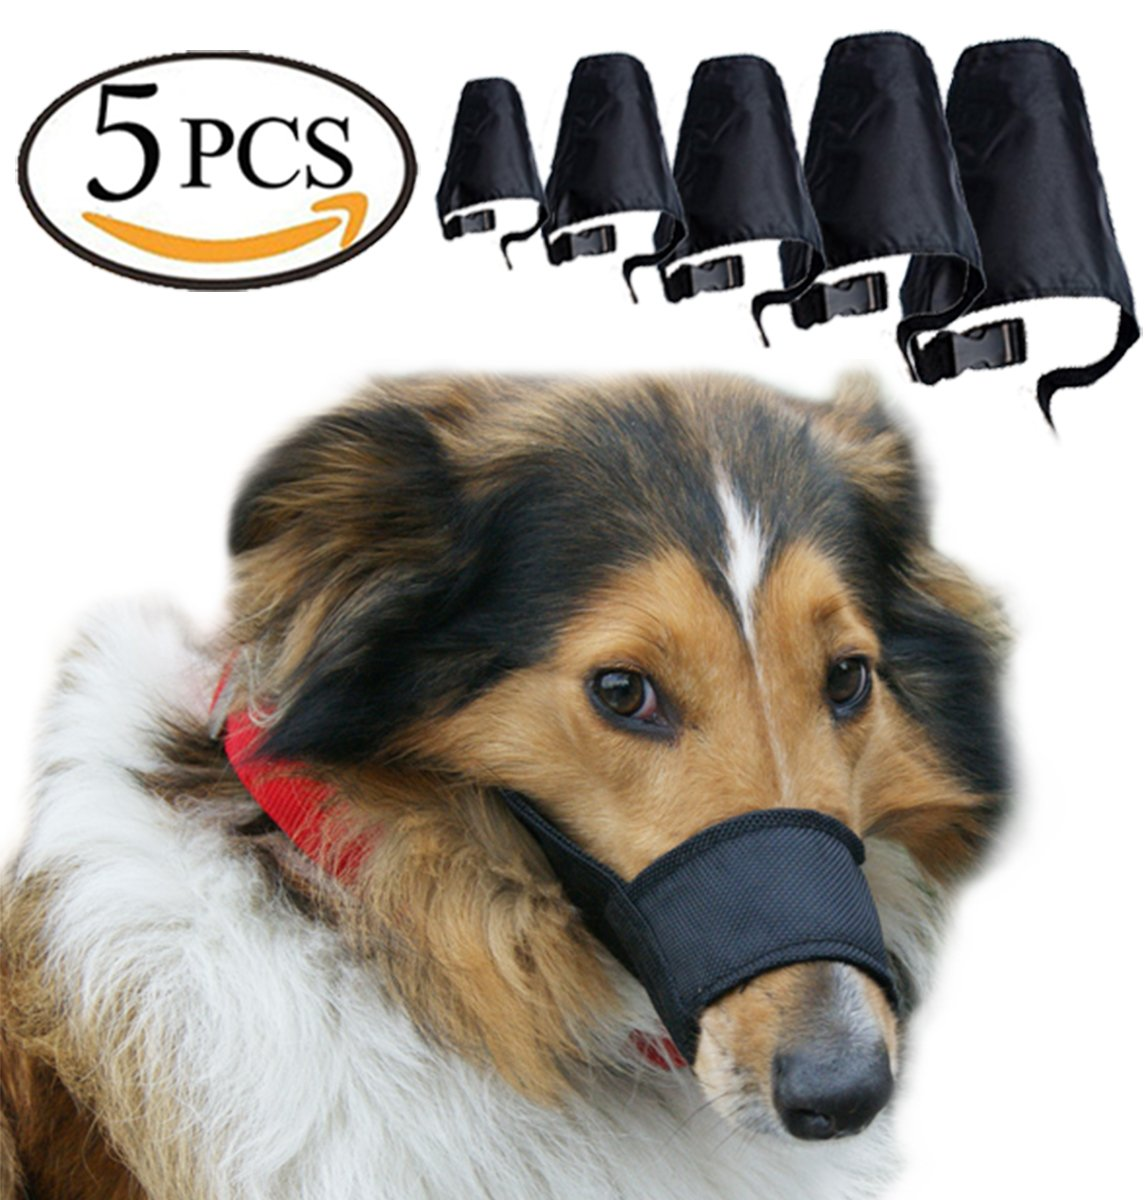 Black 5 Size Black 5 Size Avivnor Dog Muzzle Suit 5Pcs Set Adjustable Breathable Soft Muzzle Anti-Barking Chewing Safety Predection for Small Medium Large Extra Dog